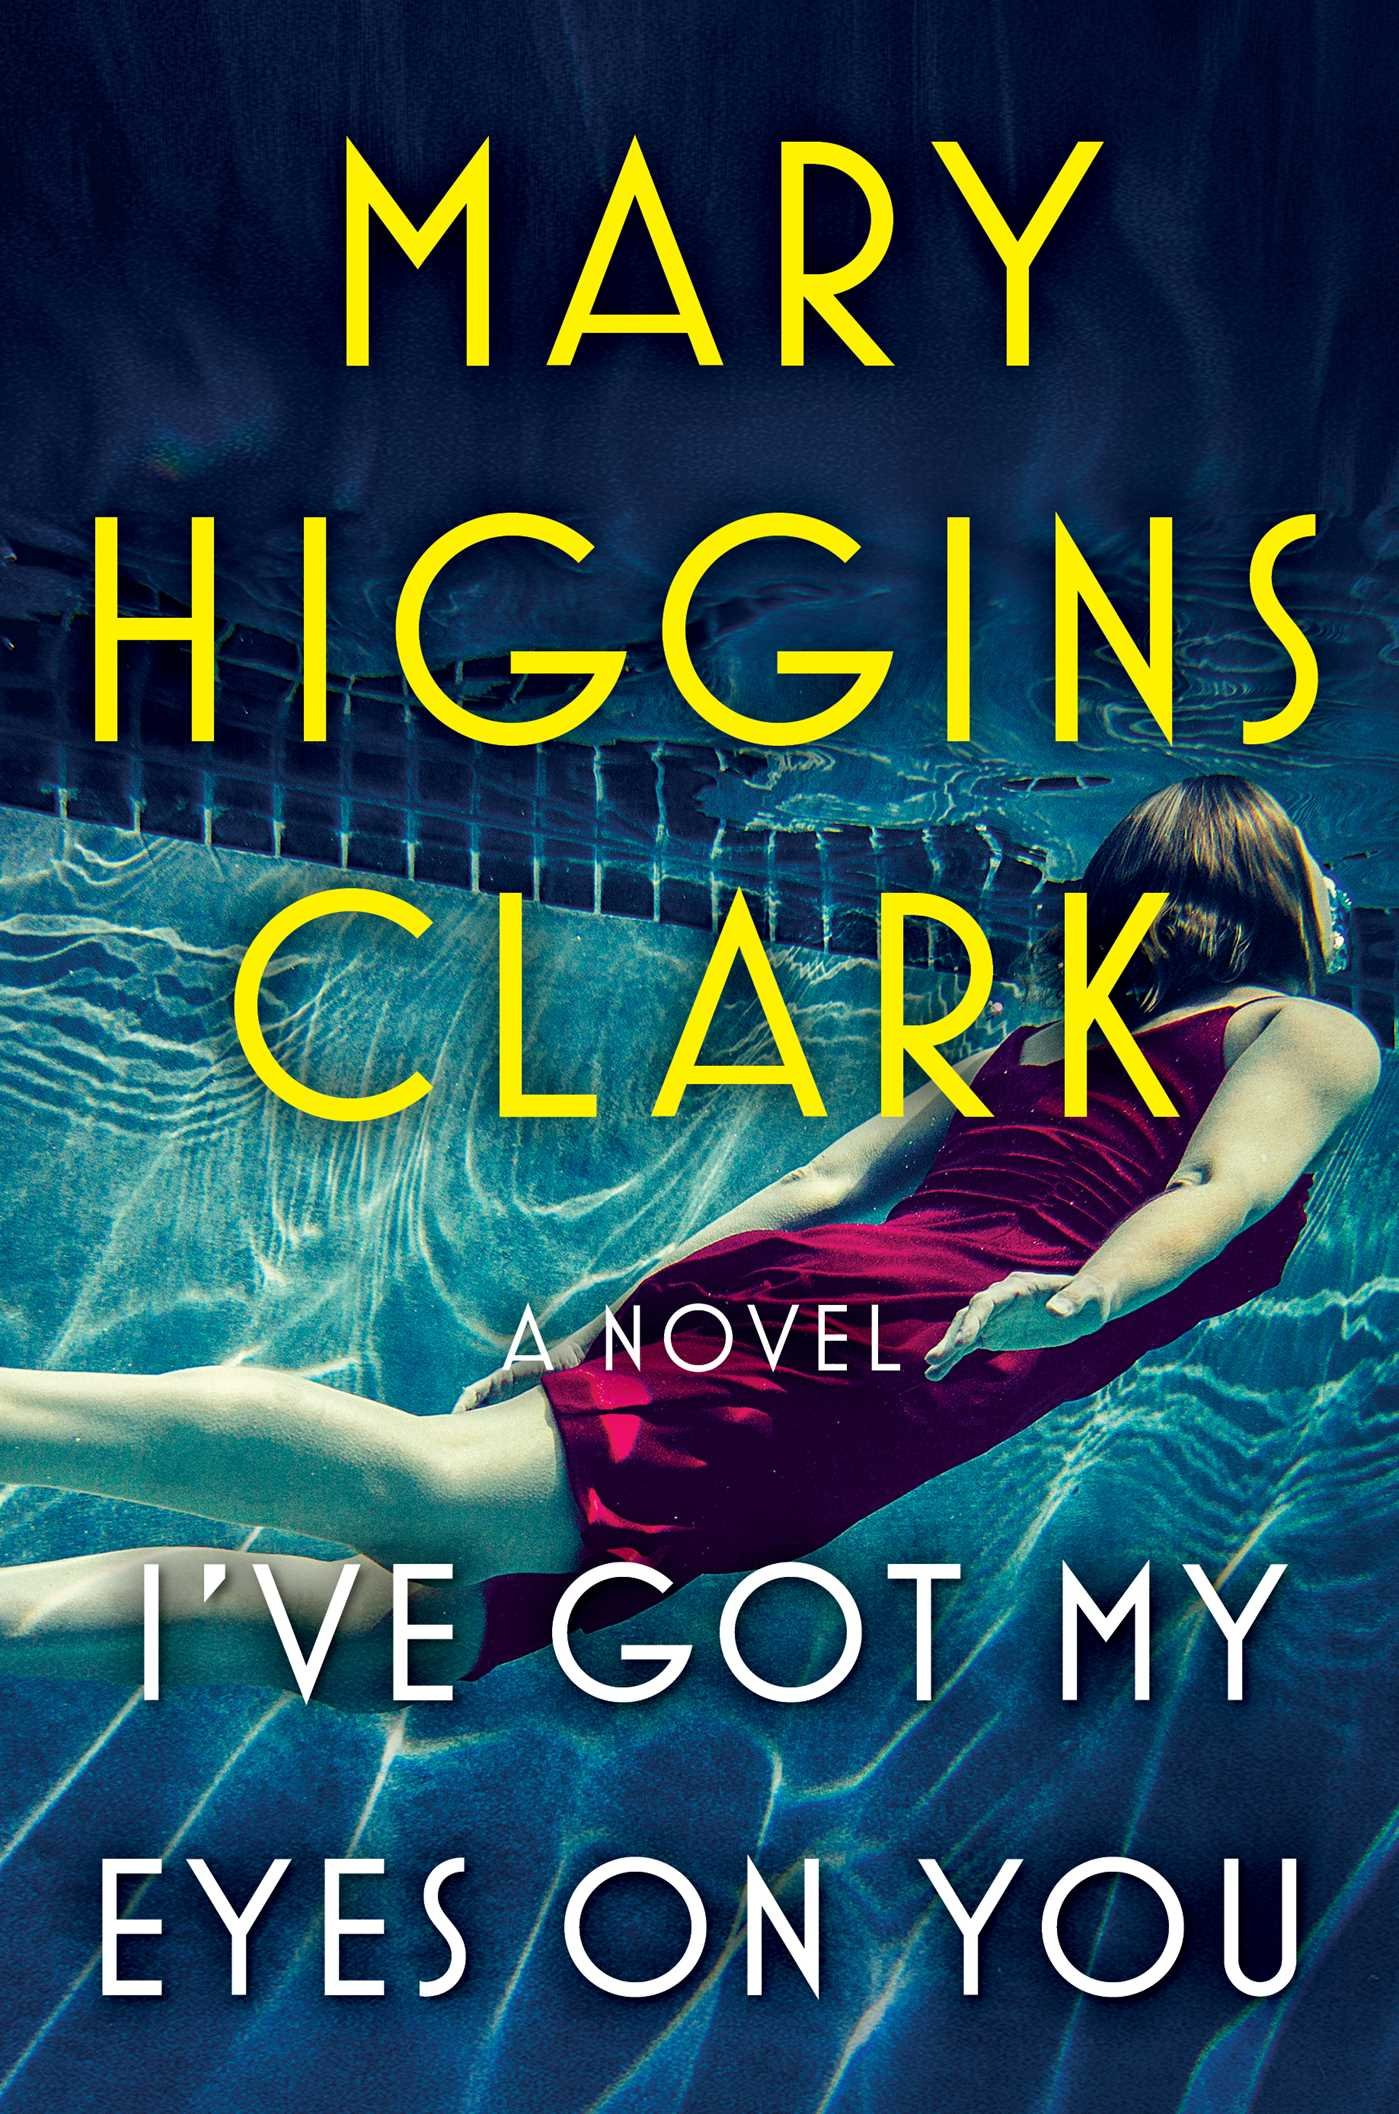 Image result for mary higgins clark i've got my eyes on you